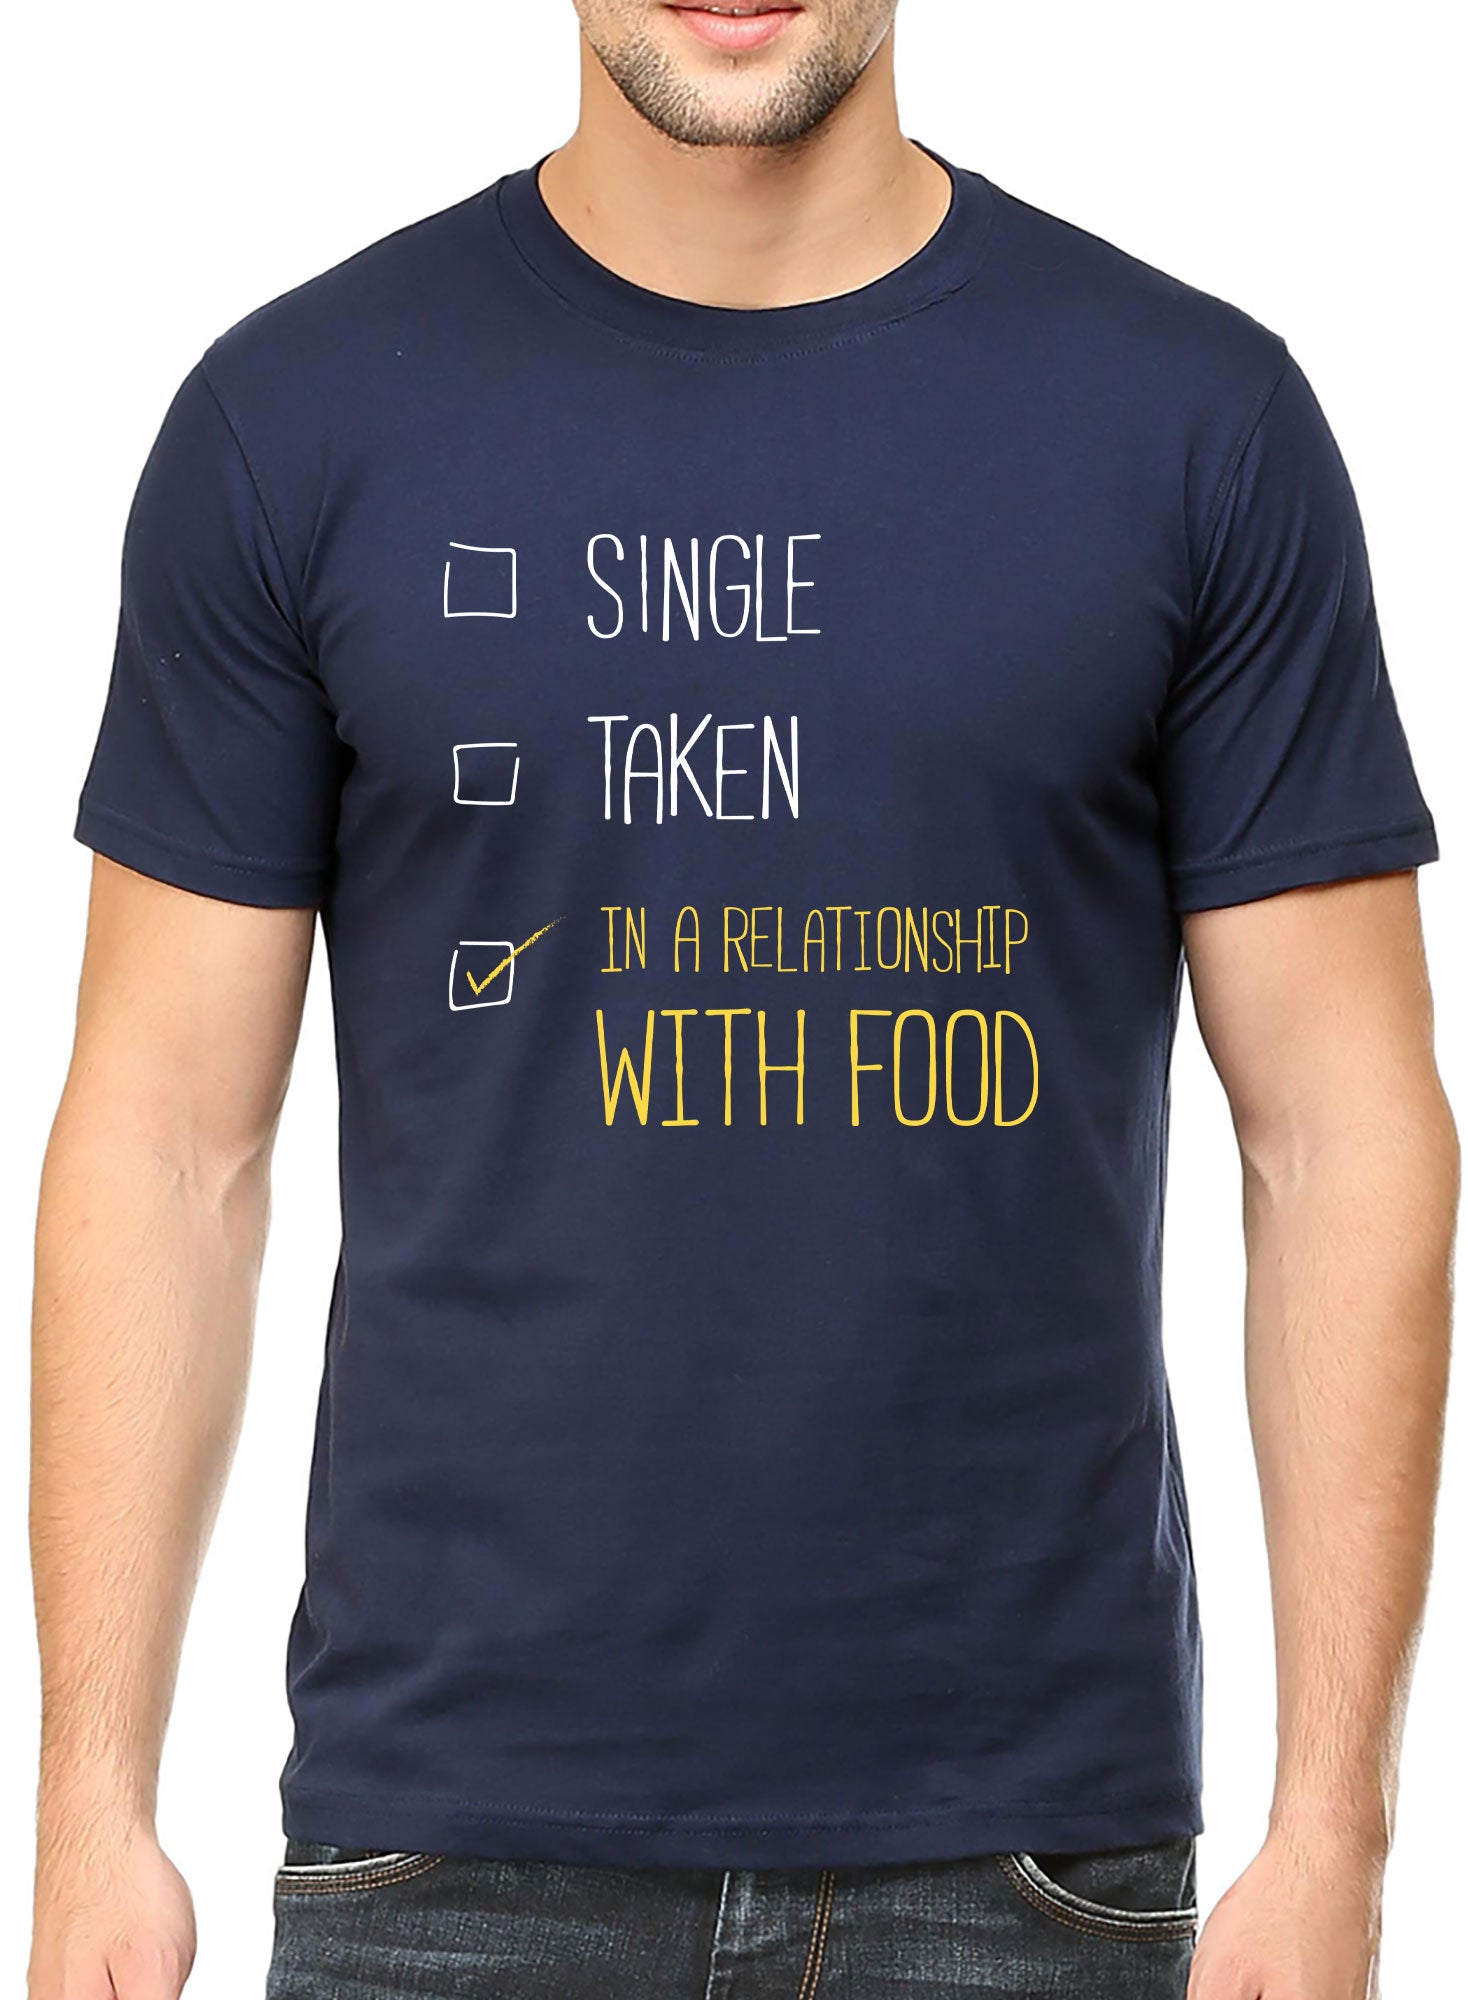 In The Relationship T-shirt - TrendTones